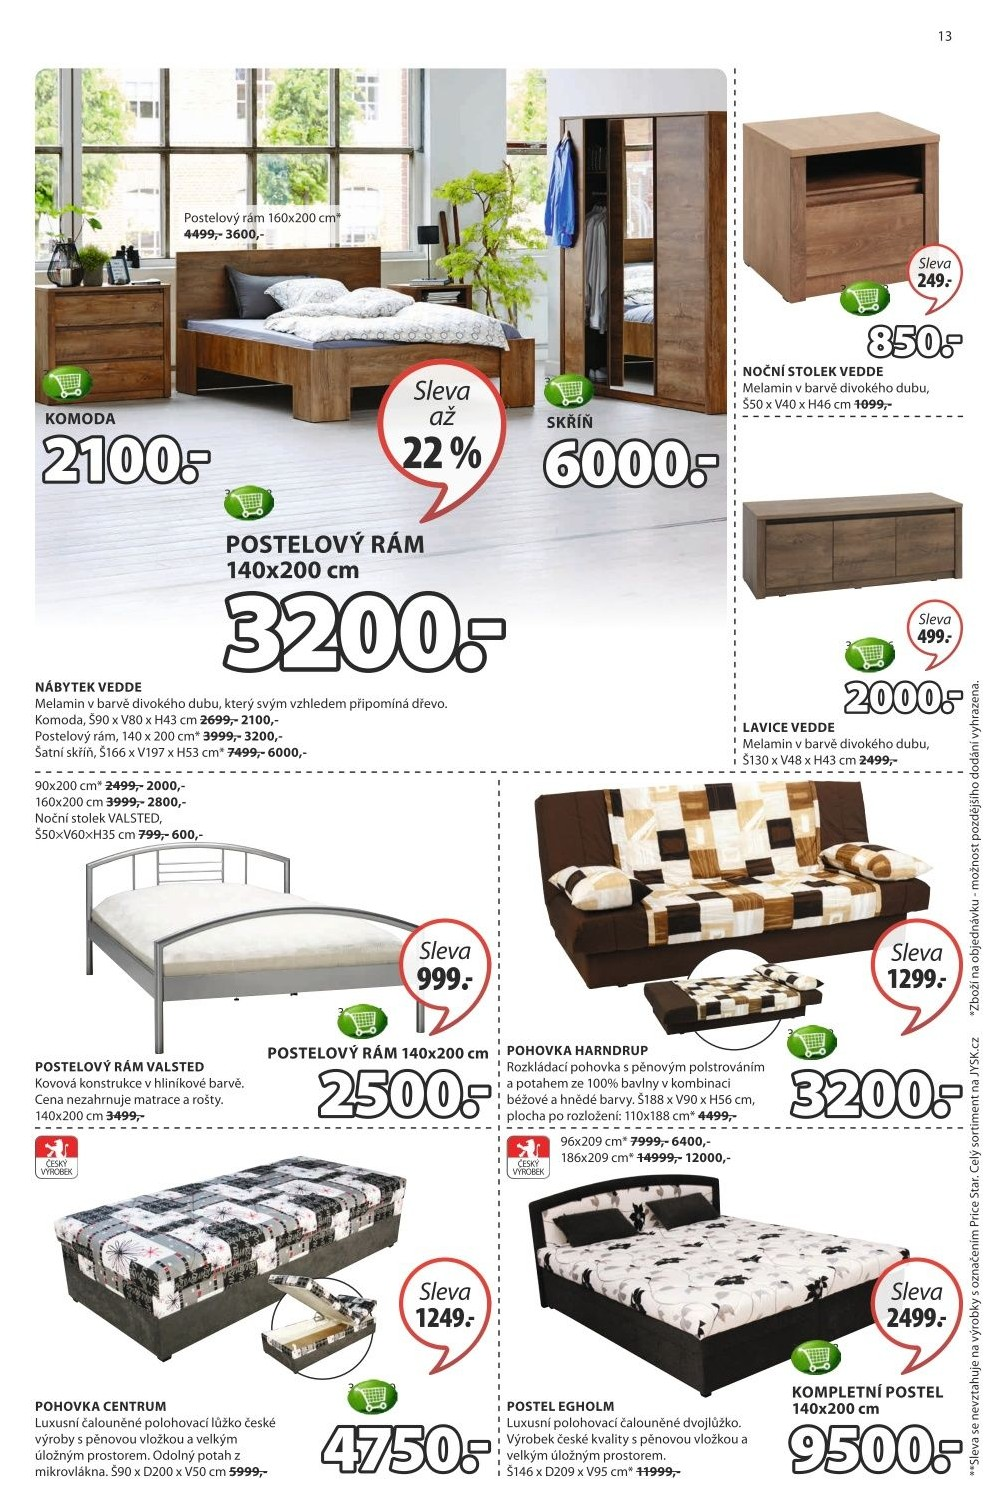 ikea katalog pdf ikea katalog 2000 pdf. Black Bedroom Furniture Sets. Home Design Ideas